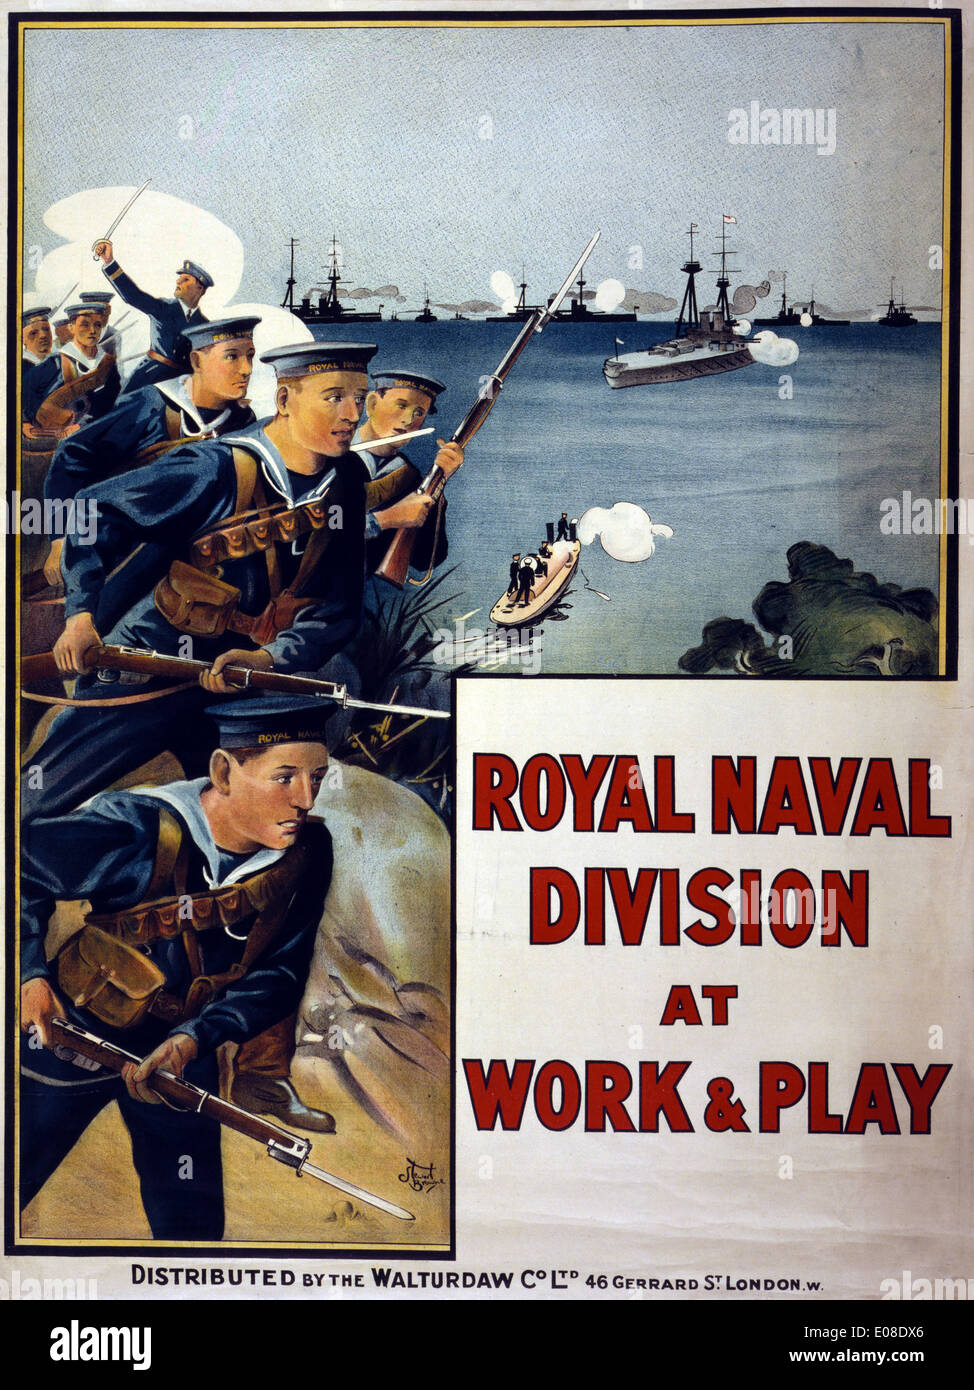 Royal Naval Division recruitment poster - Stock Image